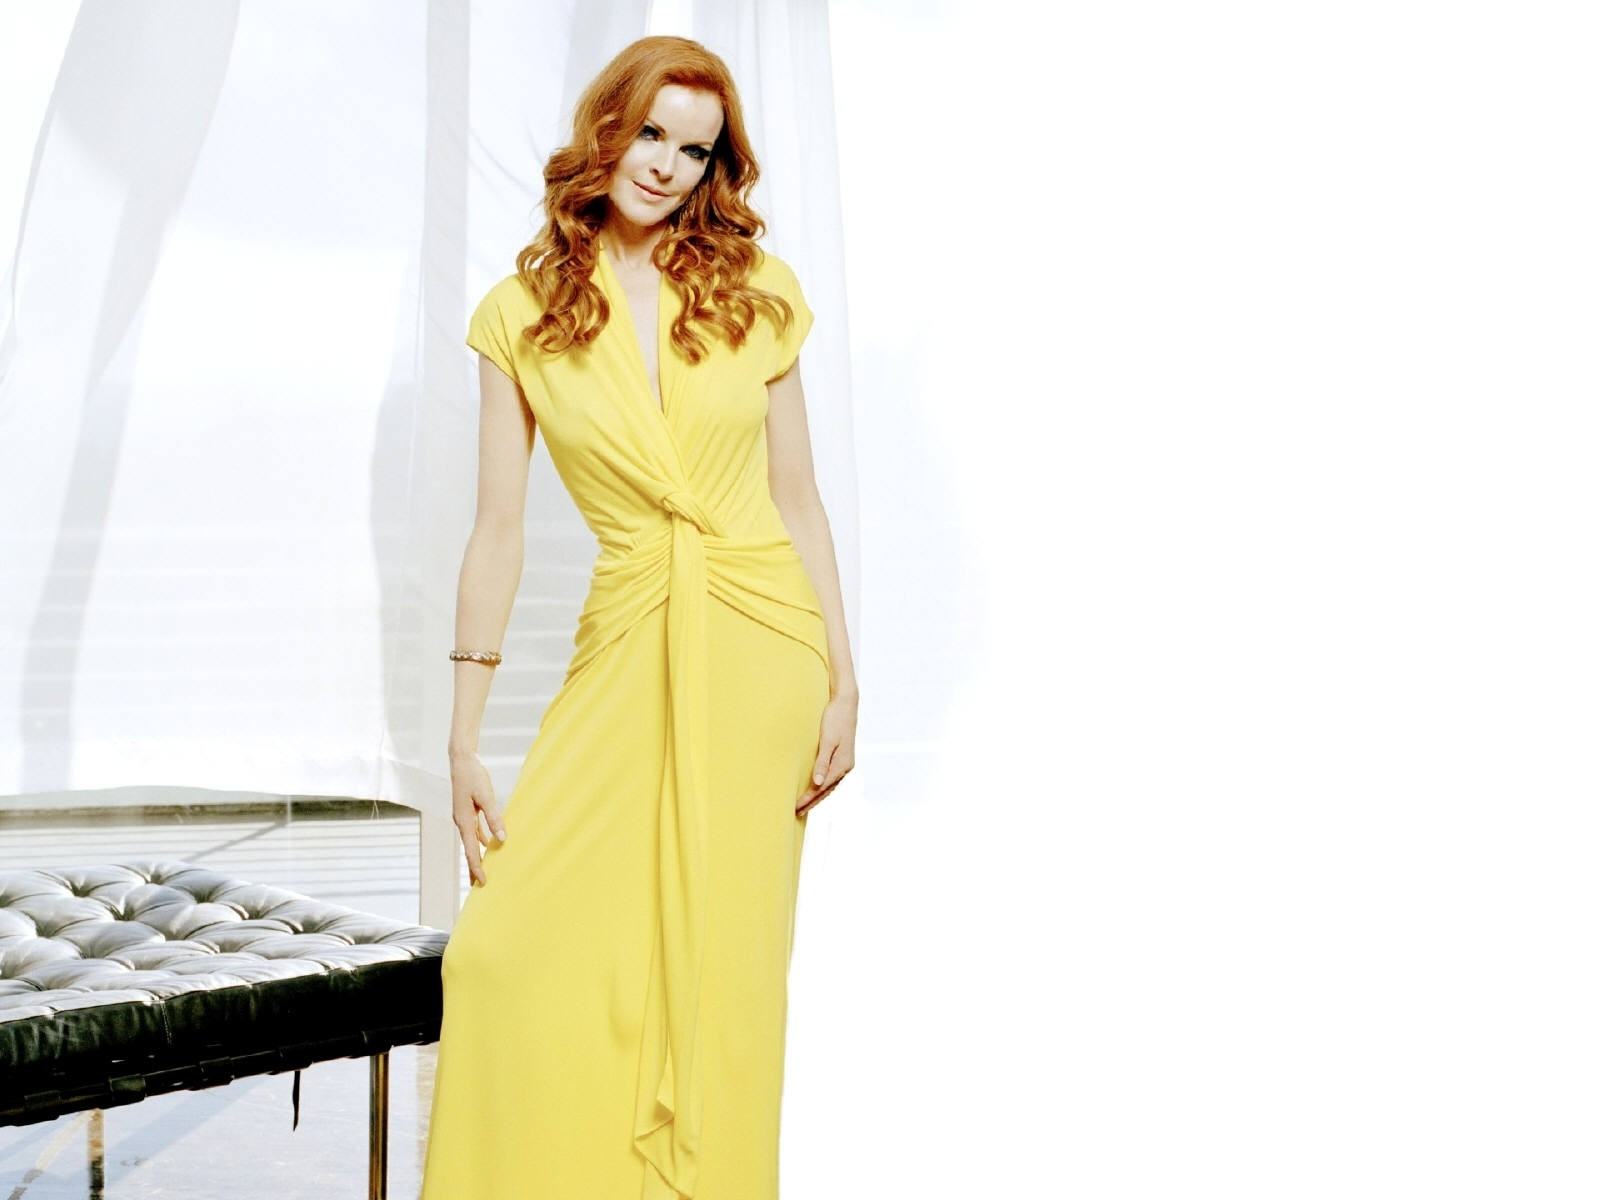 Wallpaper di Marcia Cross, attrice di Desperate Housewives